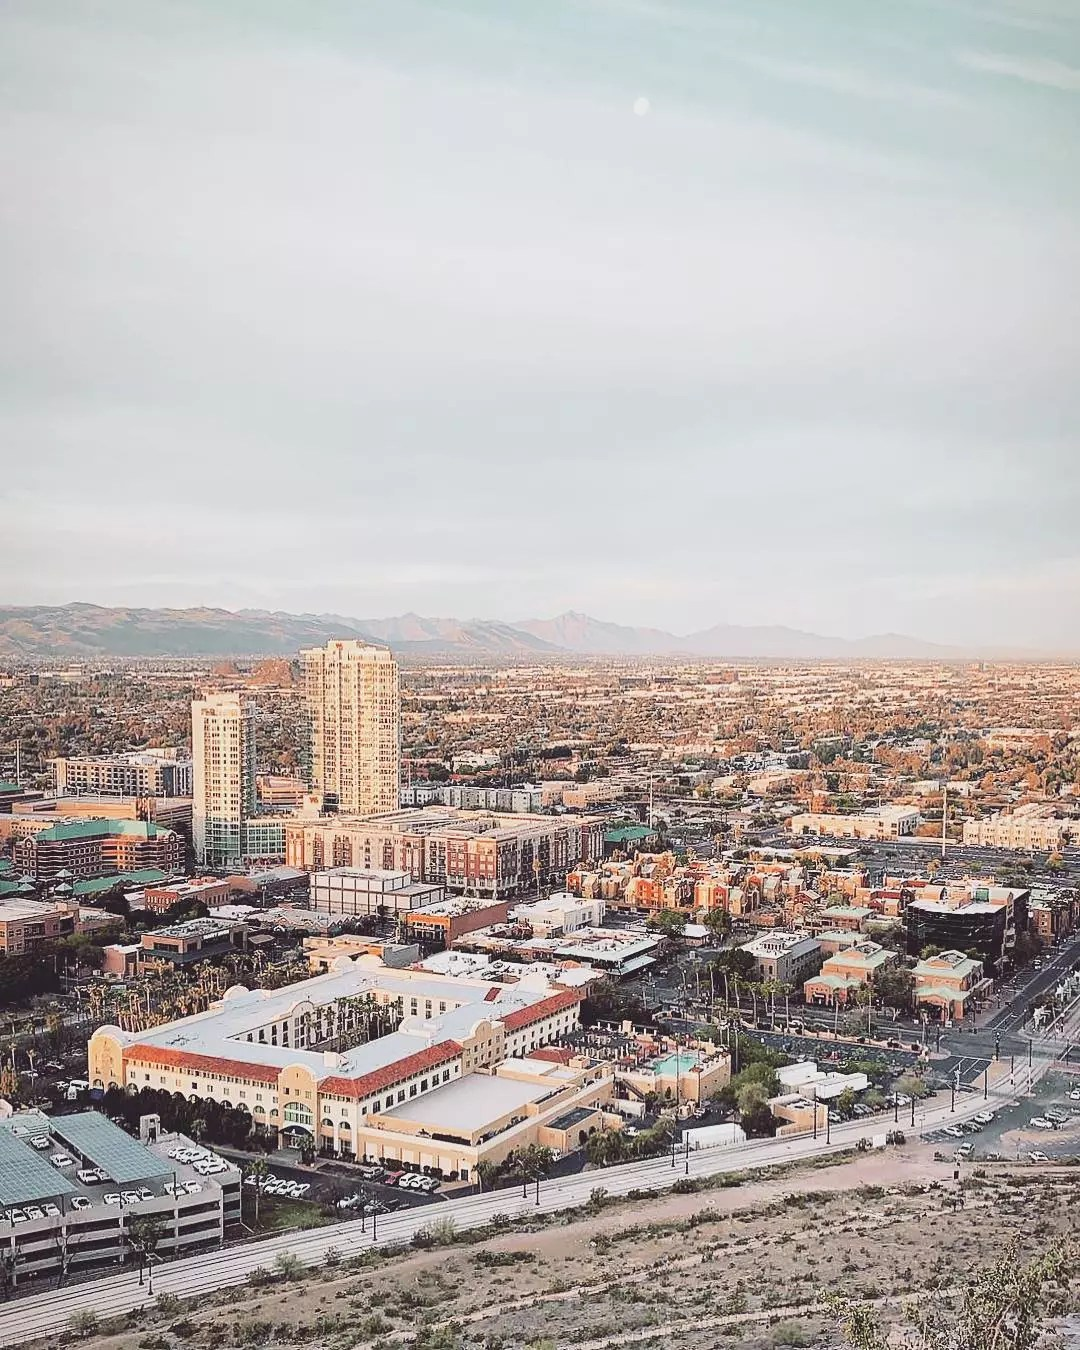 Aerial View of Downtown Tempe, AZ. Photo by Instagram user @rachmcmahon